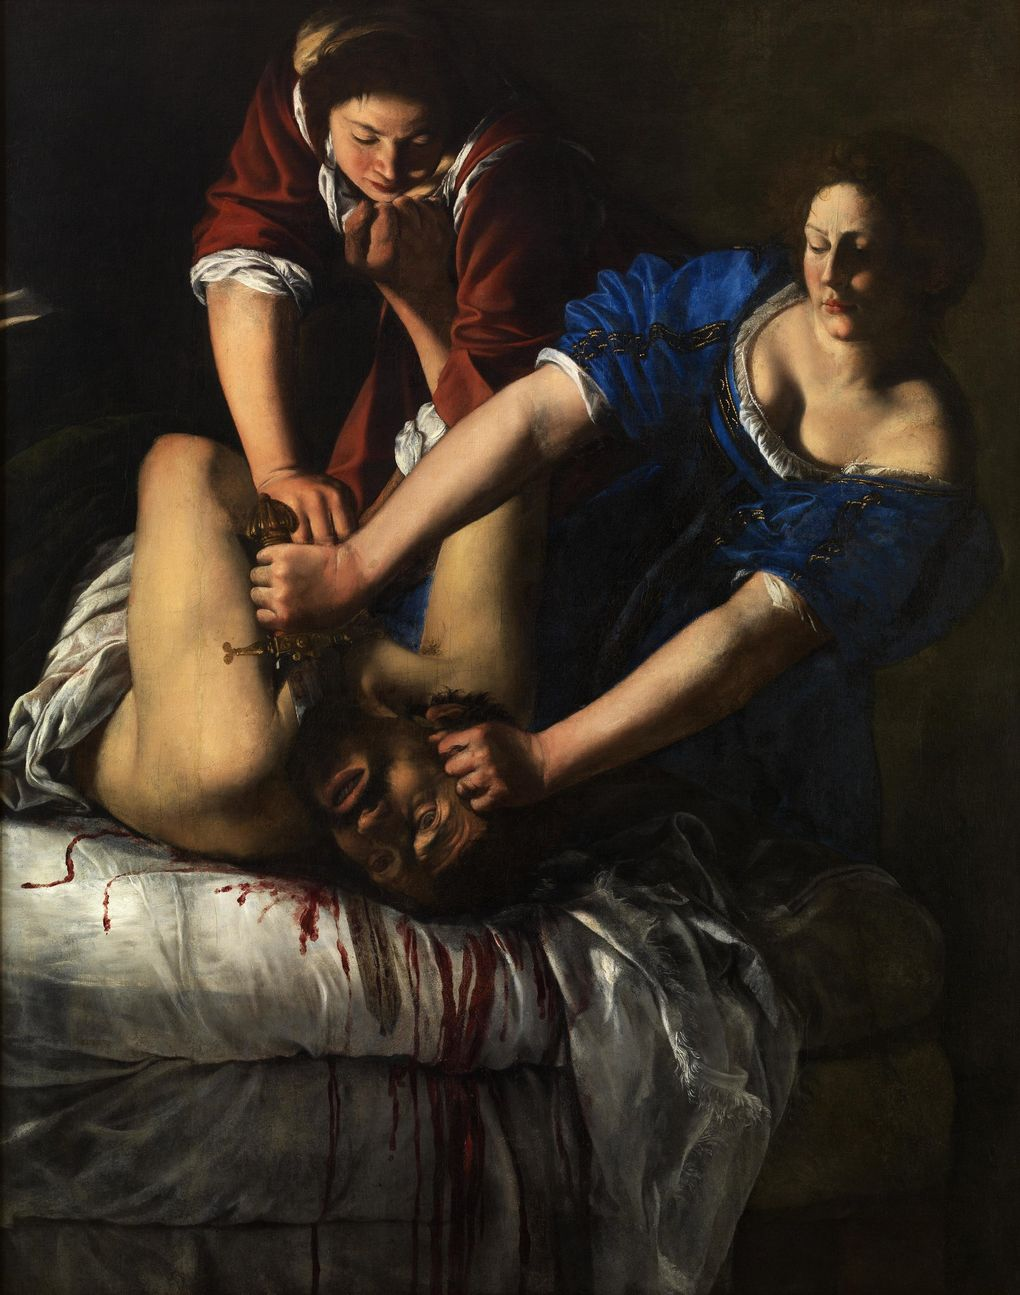 """""""Judith and Holofernes,"""" a 17th century painting by Artemisia Gentileschi, one of many treasures visiting the Seattle Art Museum from Italy this fall. (Museo e Real Bosco di Capodimonte)"""